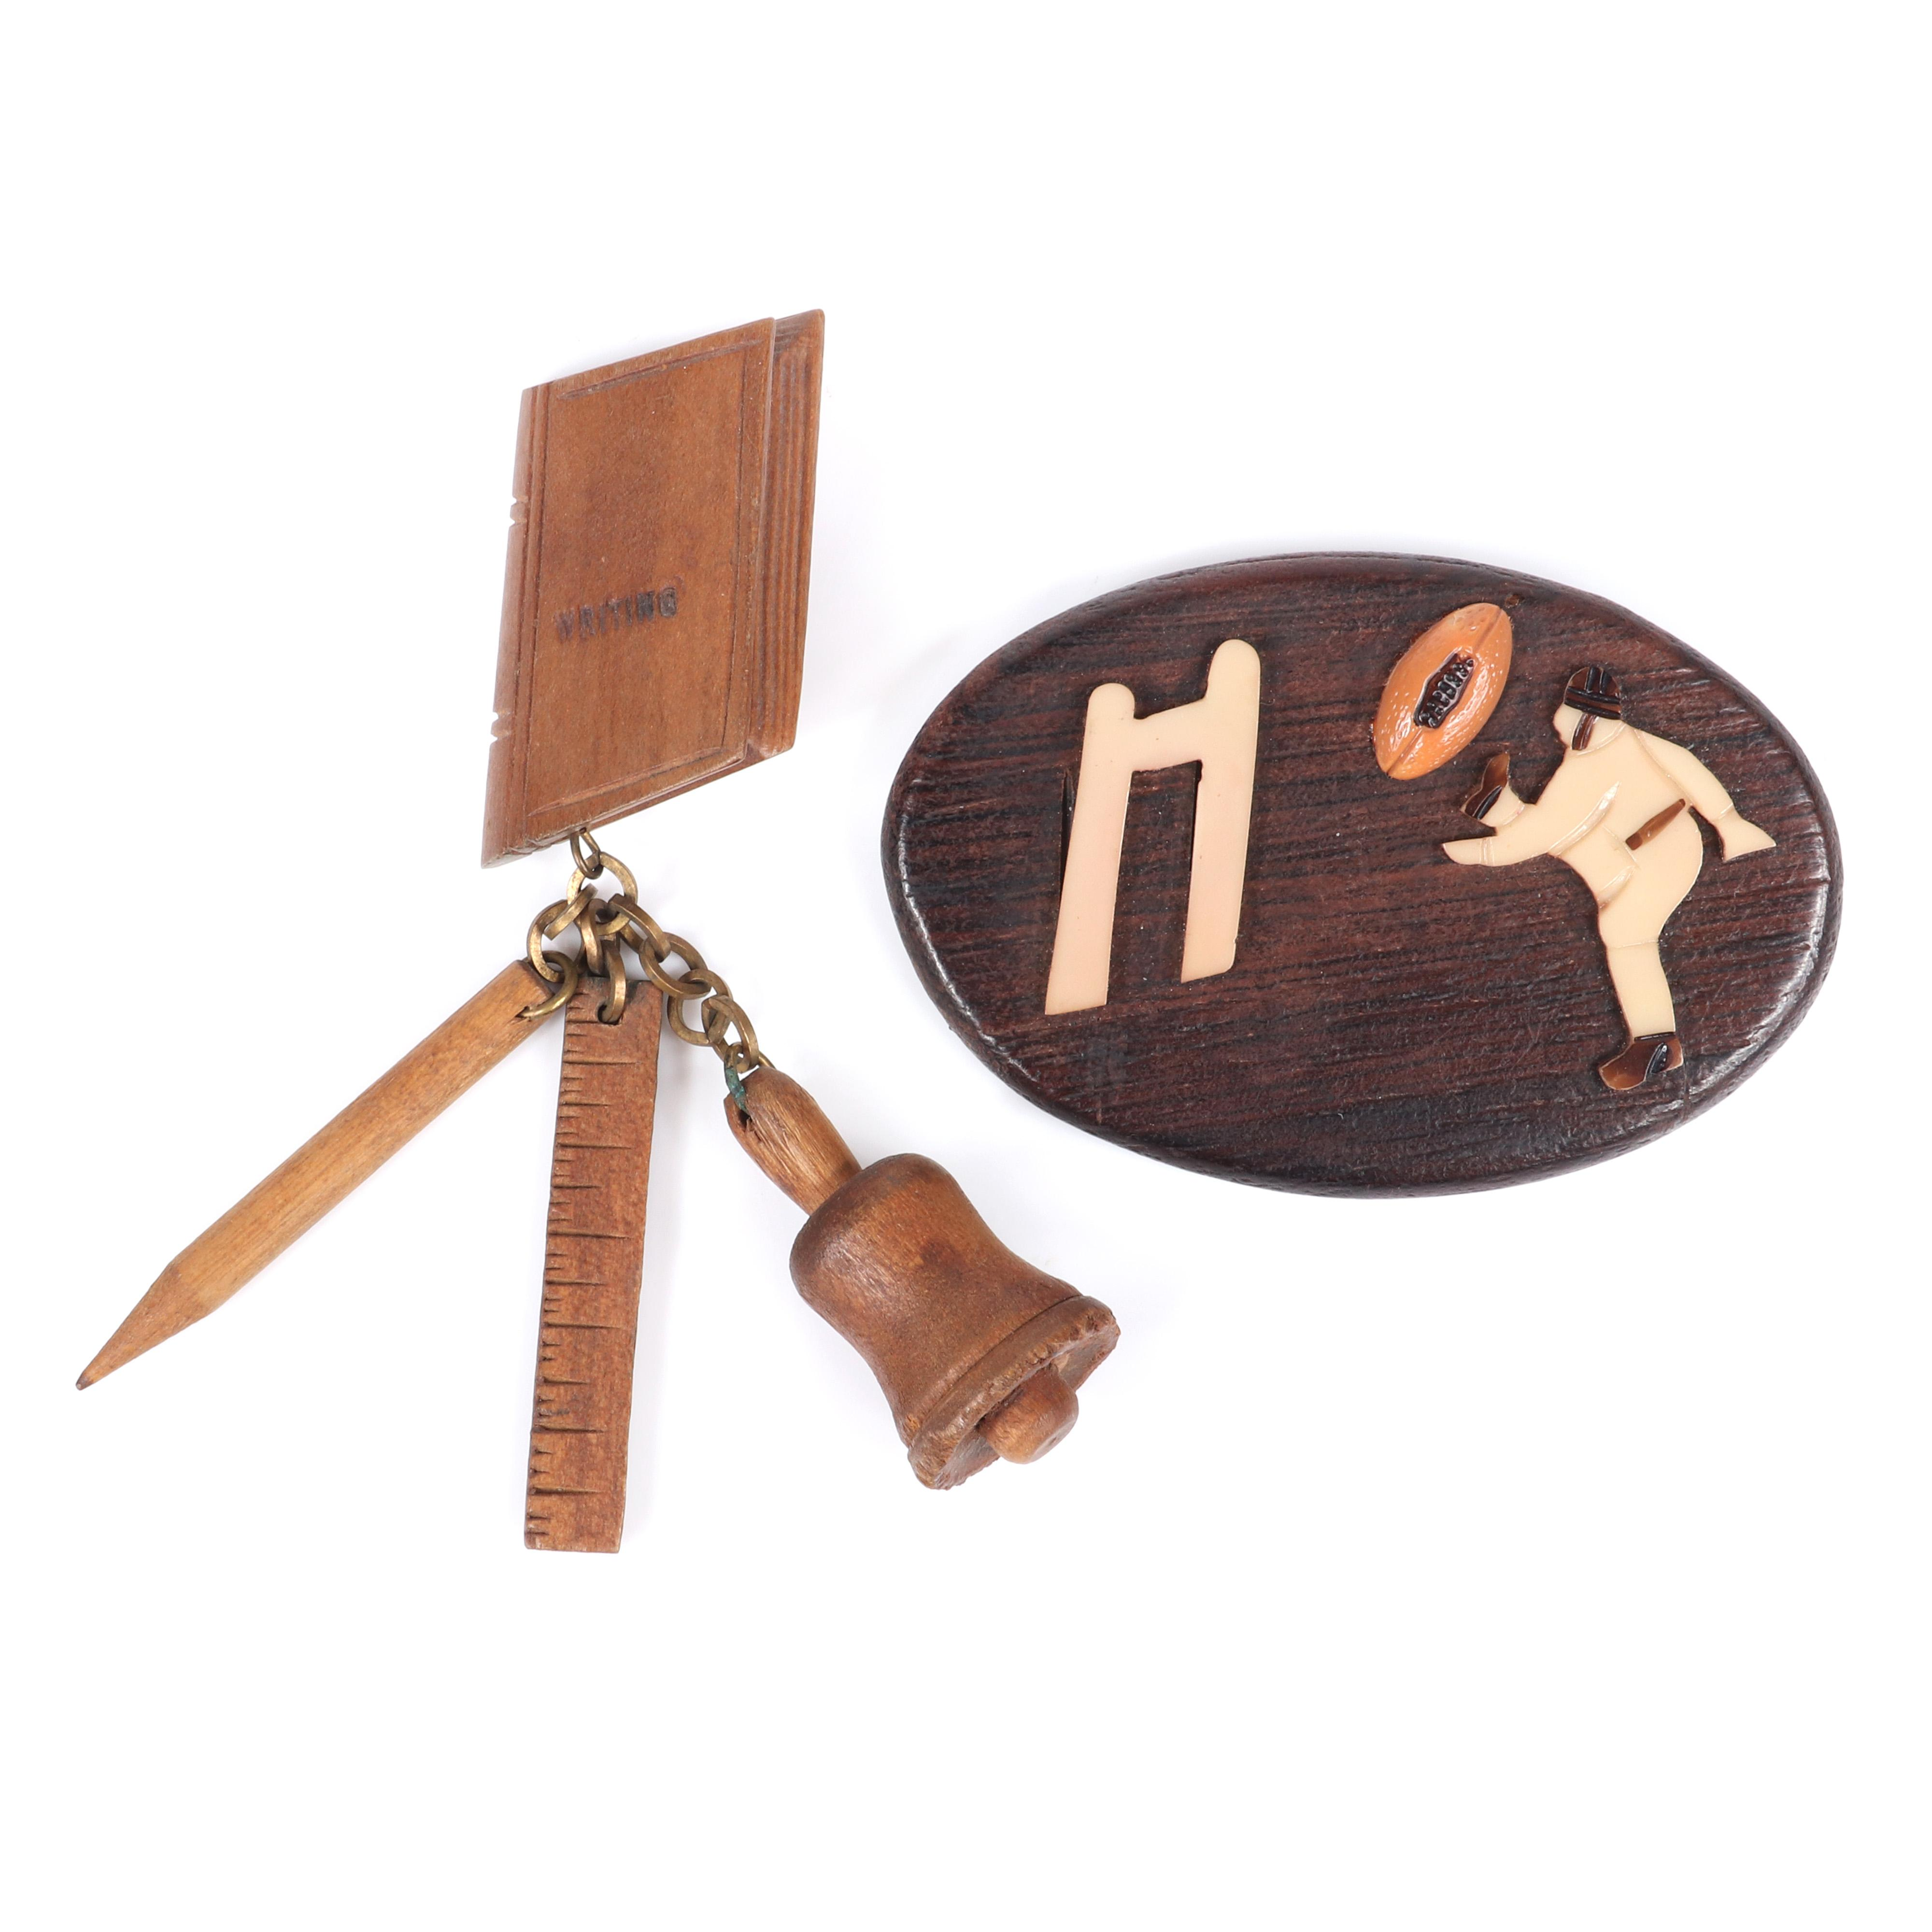 """Two vintage carved wood figural pins: large oval Varsity football themed brooch with celluloid kicker and goal post, with """"School Days"""" book pin with bell, ruler and pencil charms. 2 1/4""""H x 3 3/8""""W"""